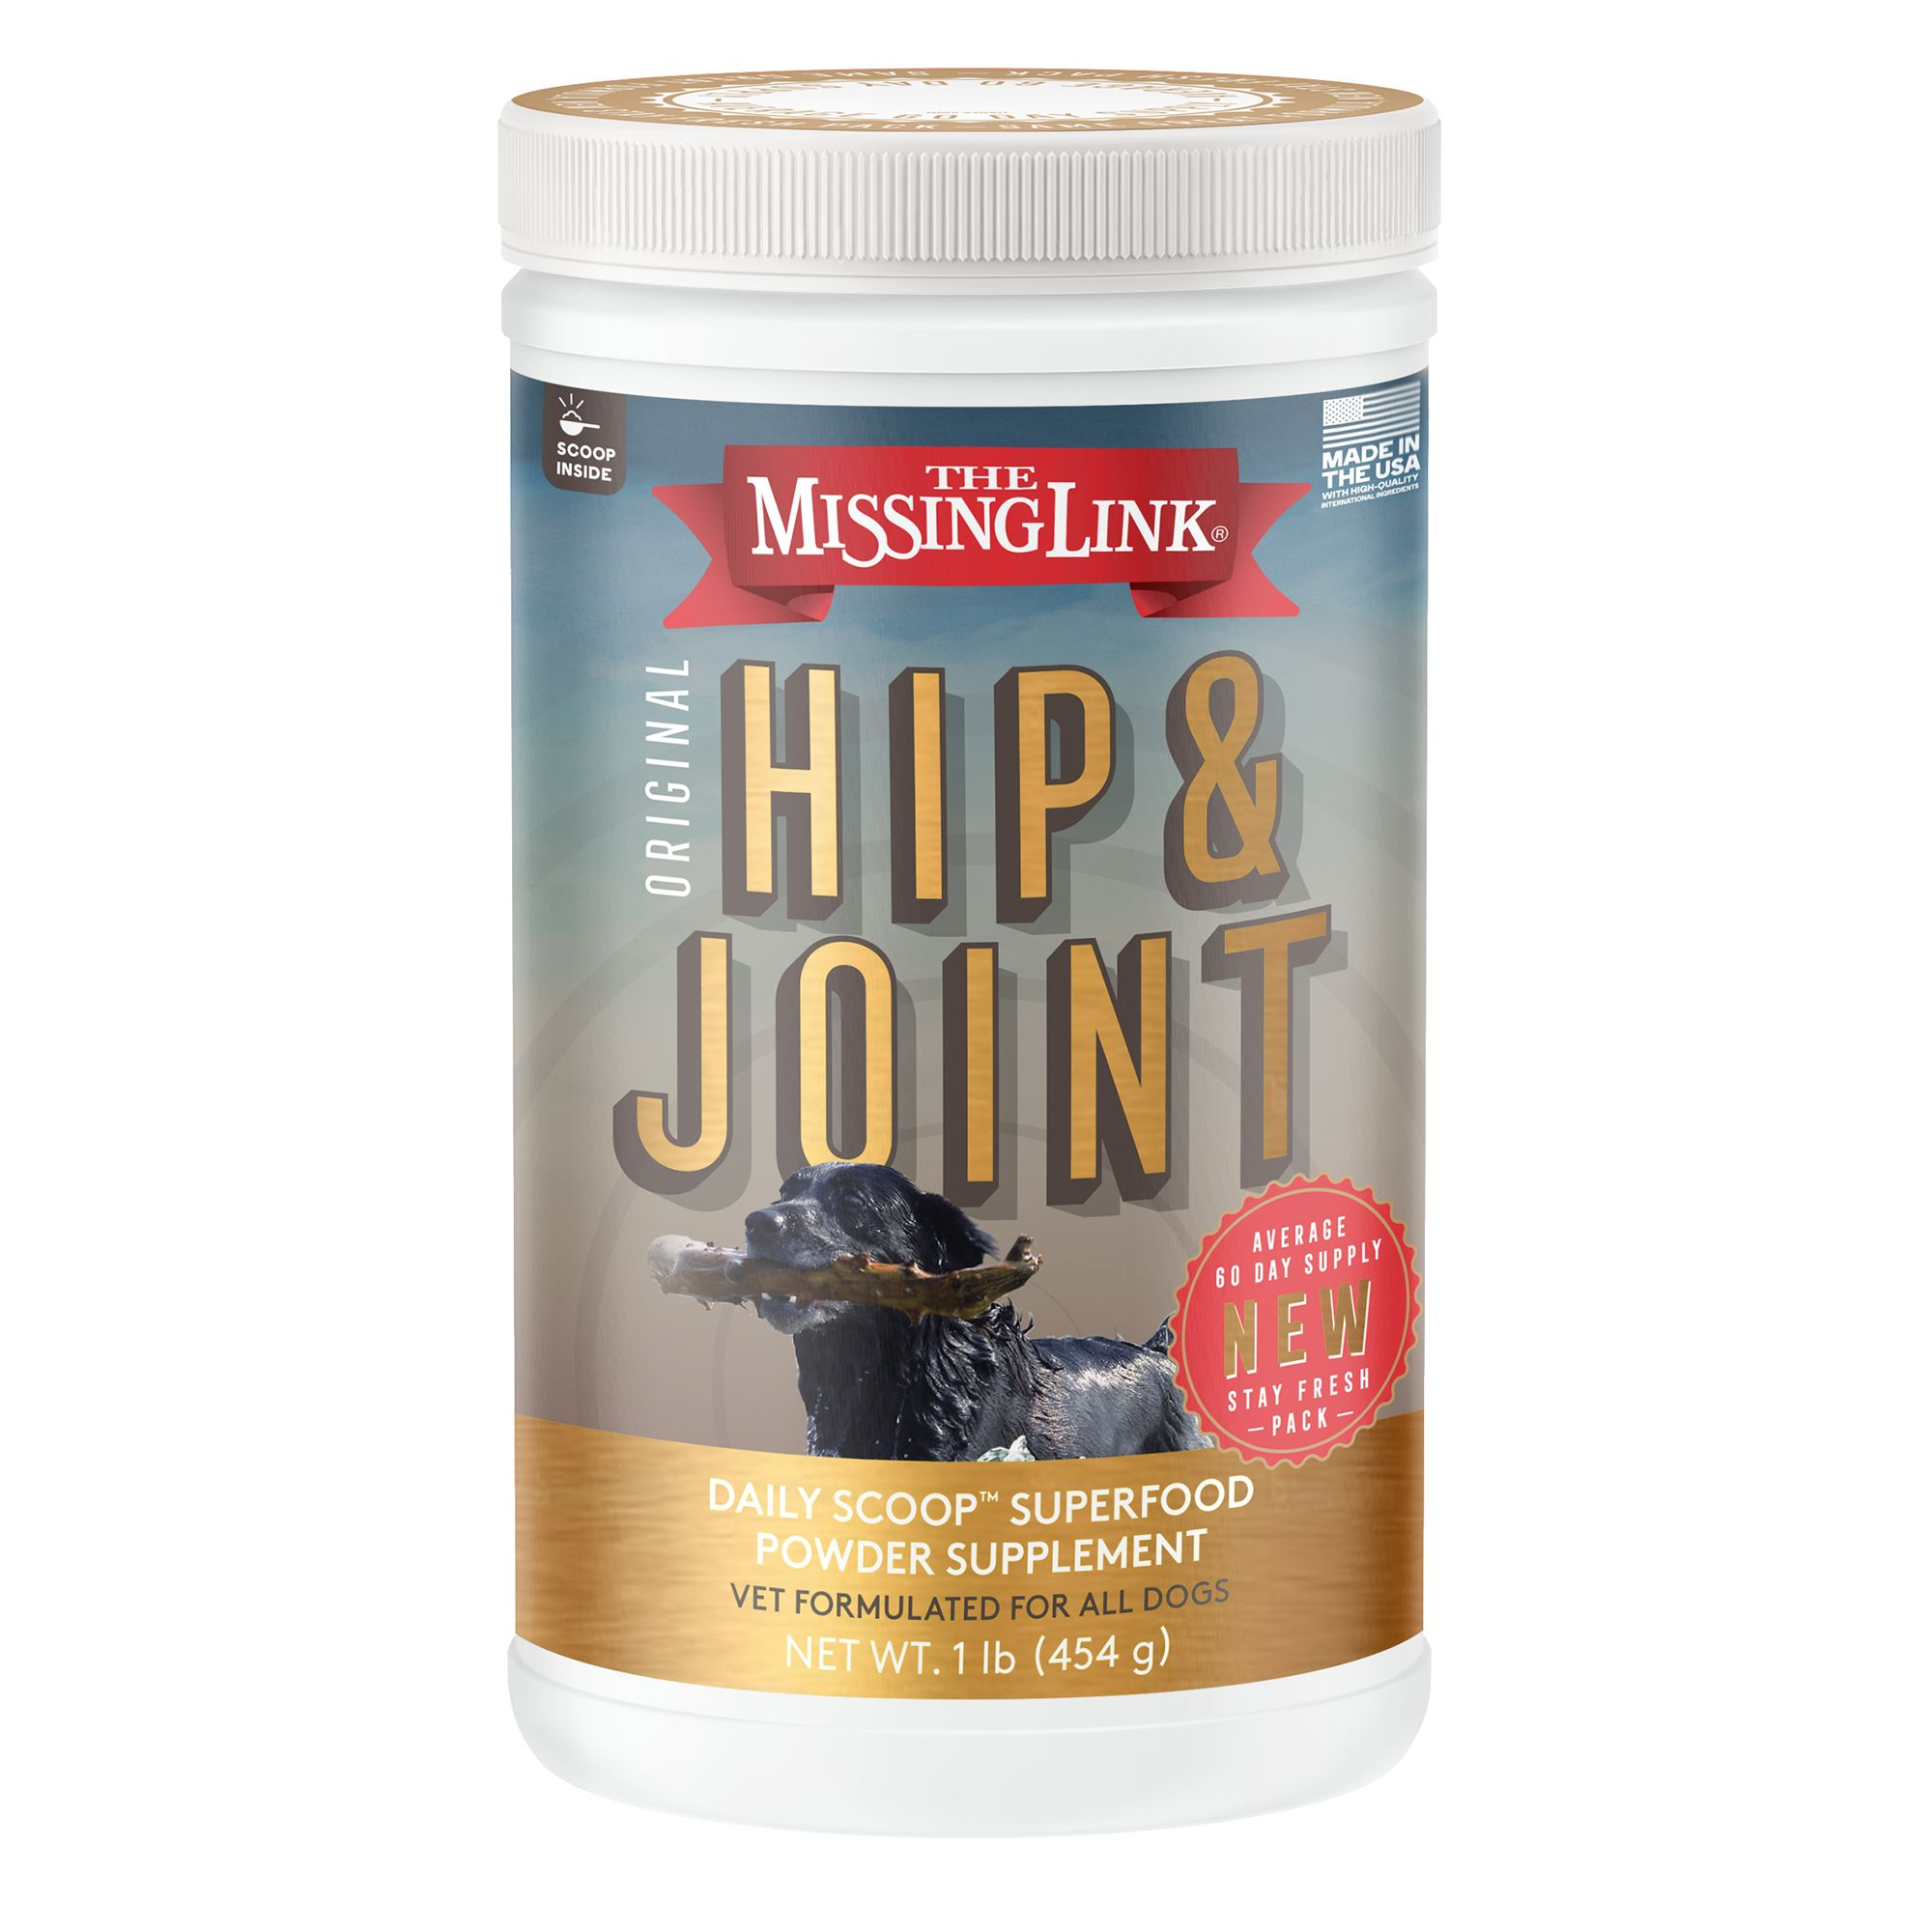 The Missing Link Hip And Joint Dog Food Supplement Size 1 Lb